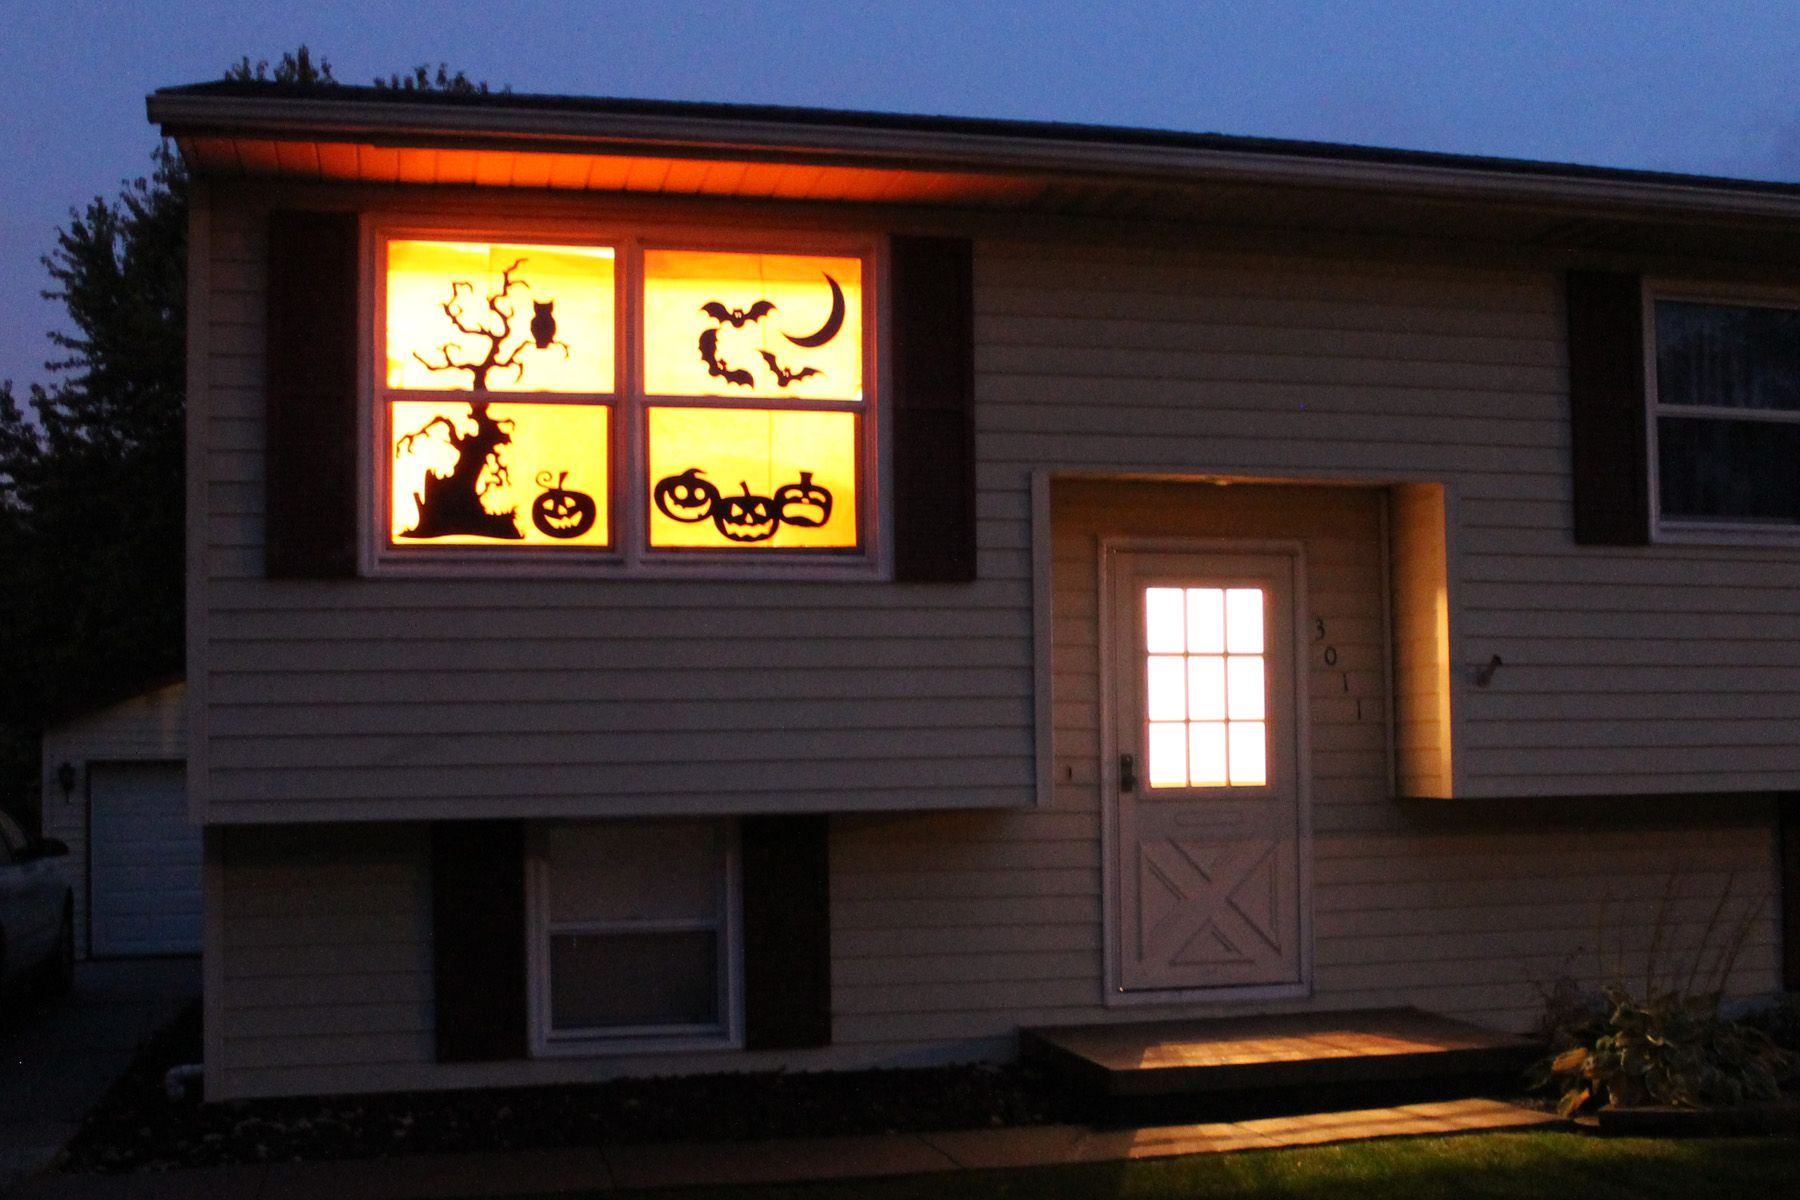 Halloween Silhouette Windows 06 halloween Pinterest Halloween - Window Halloween Decorations